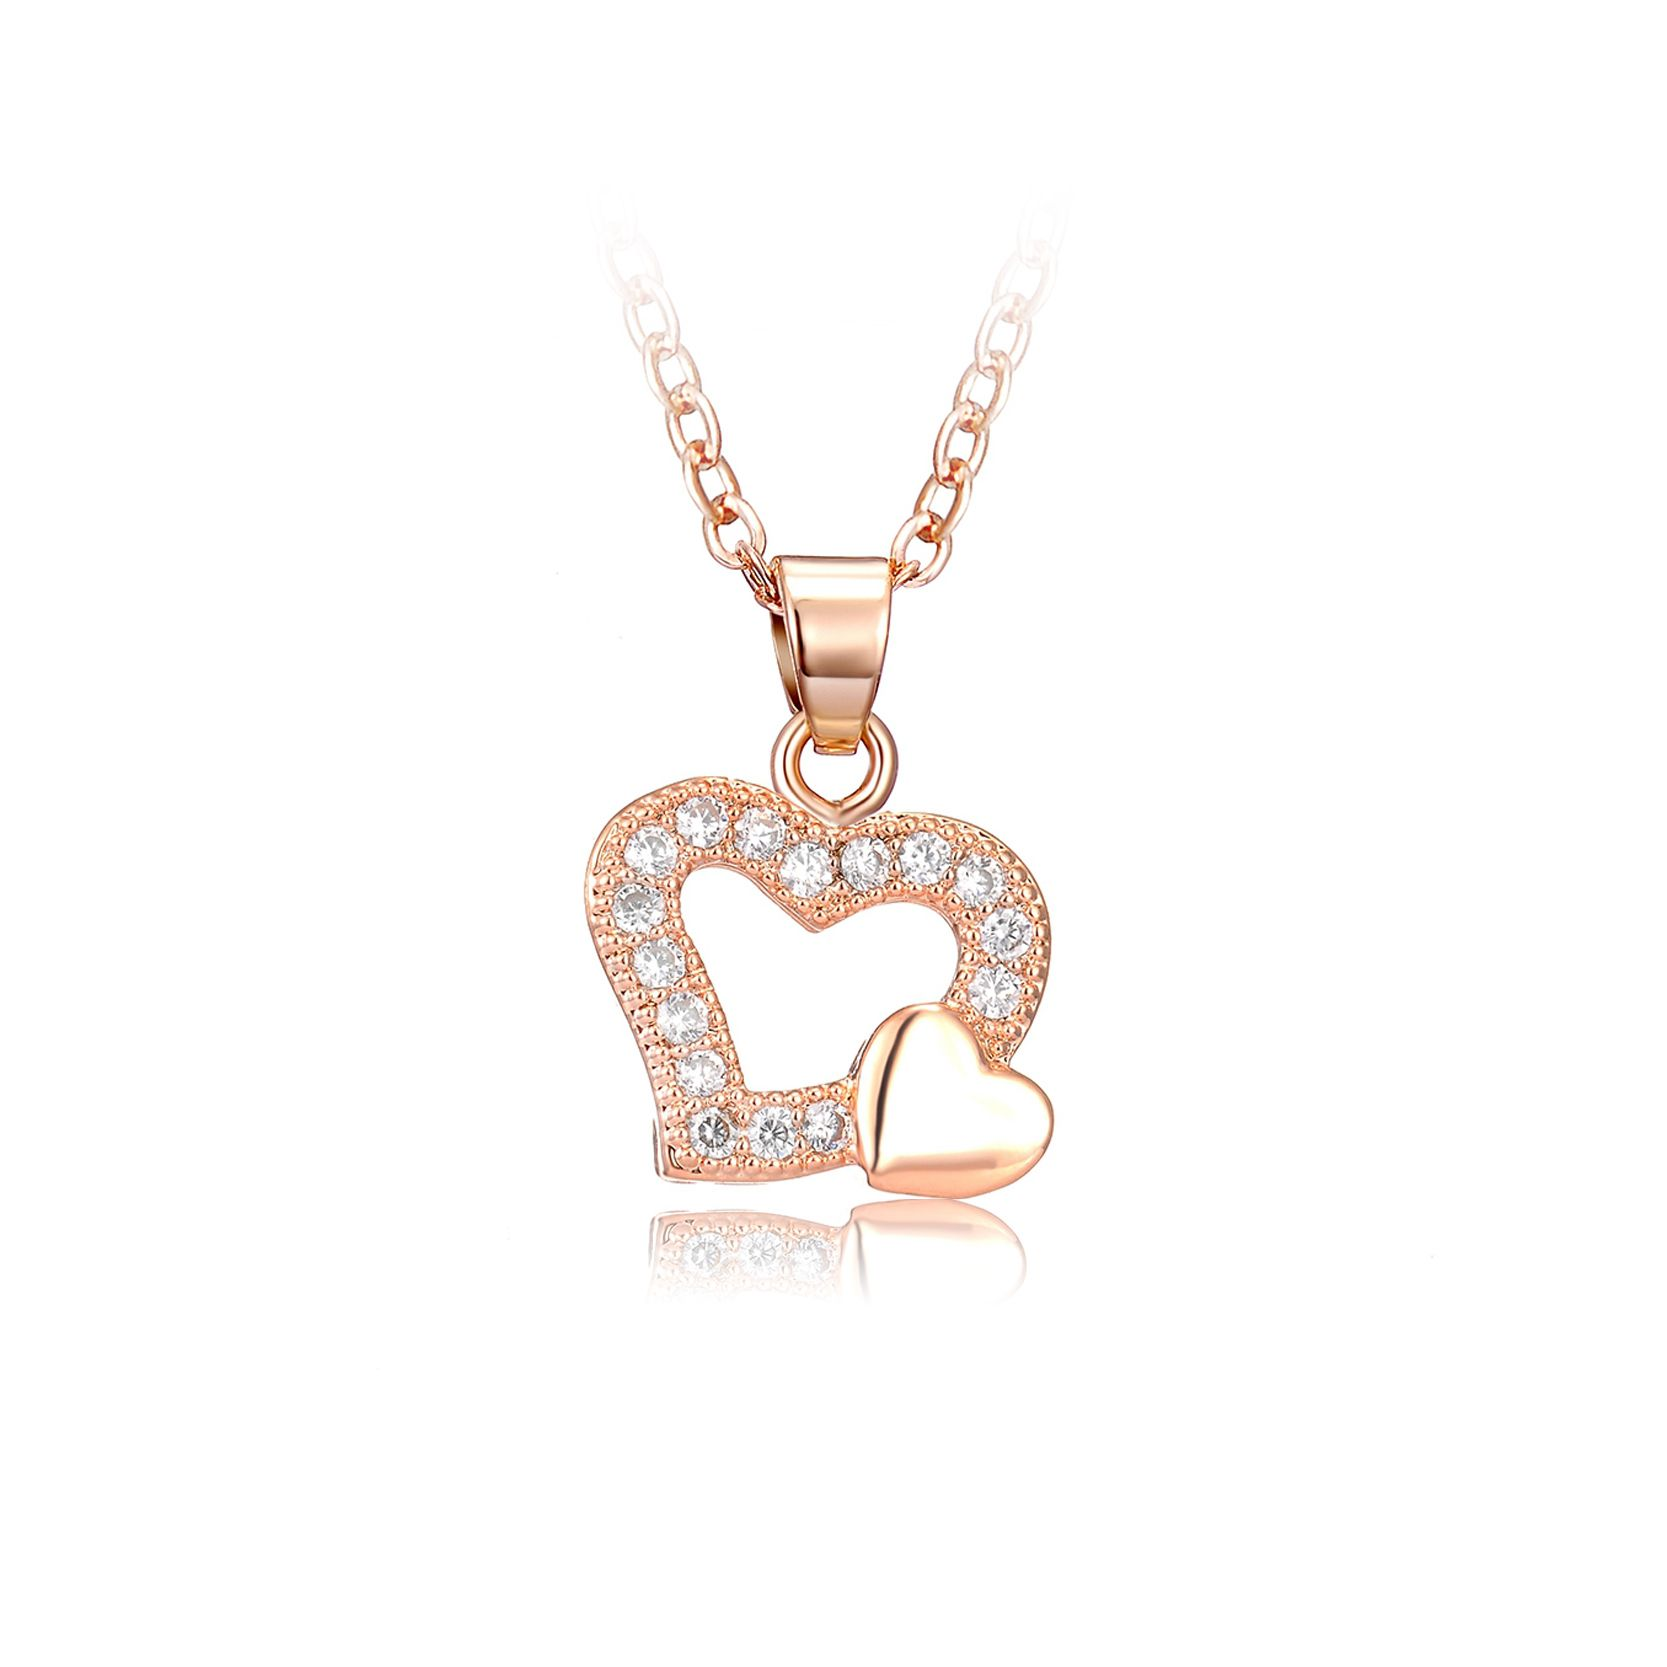 Drole rose gold color hollow heart pendant statement necklace for